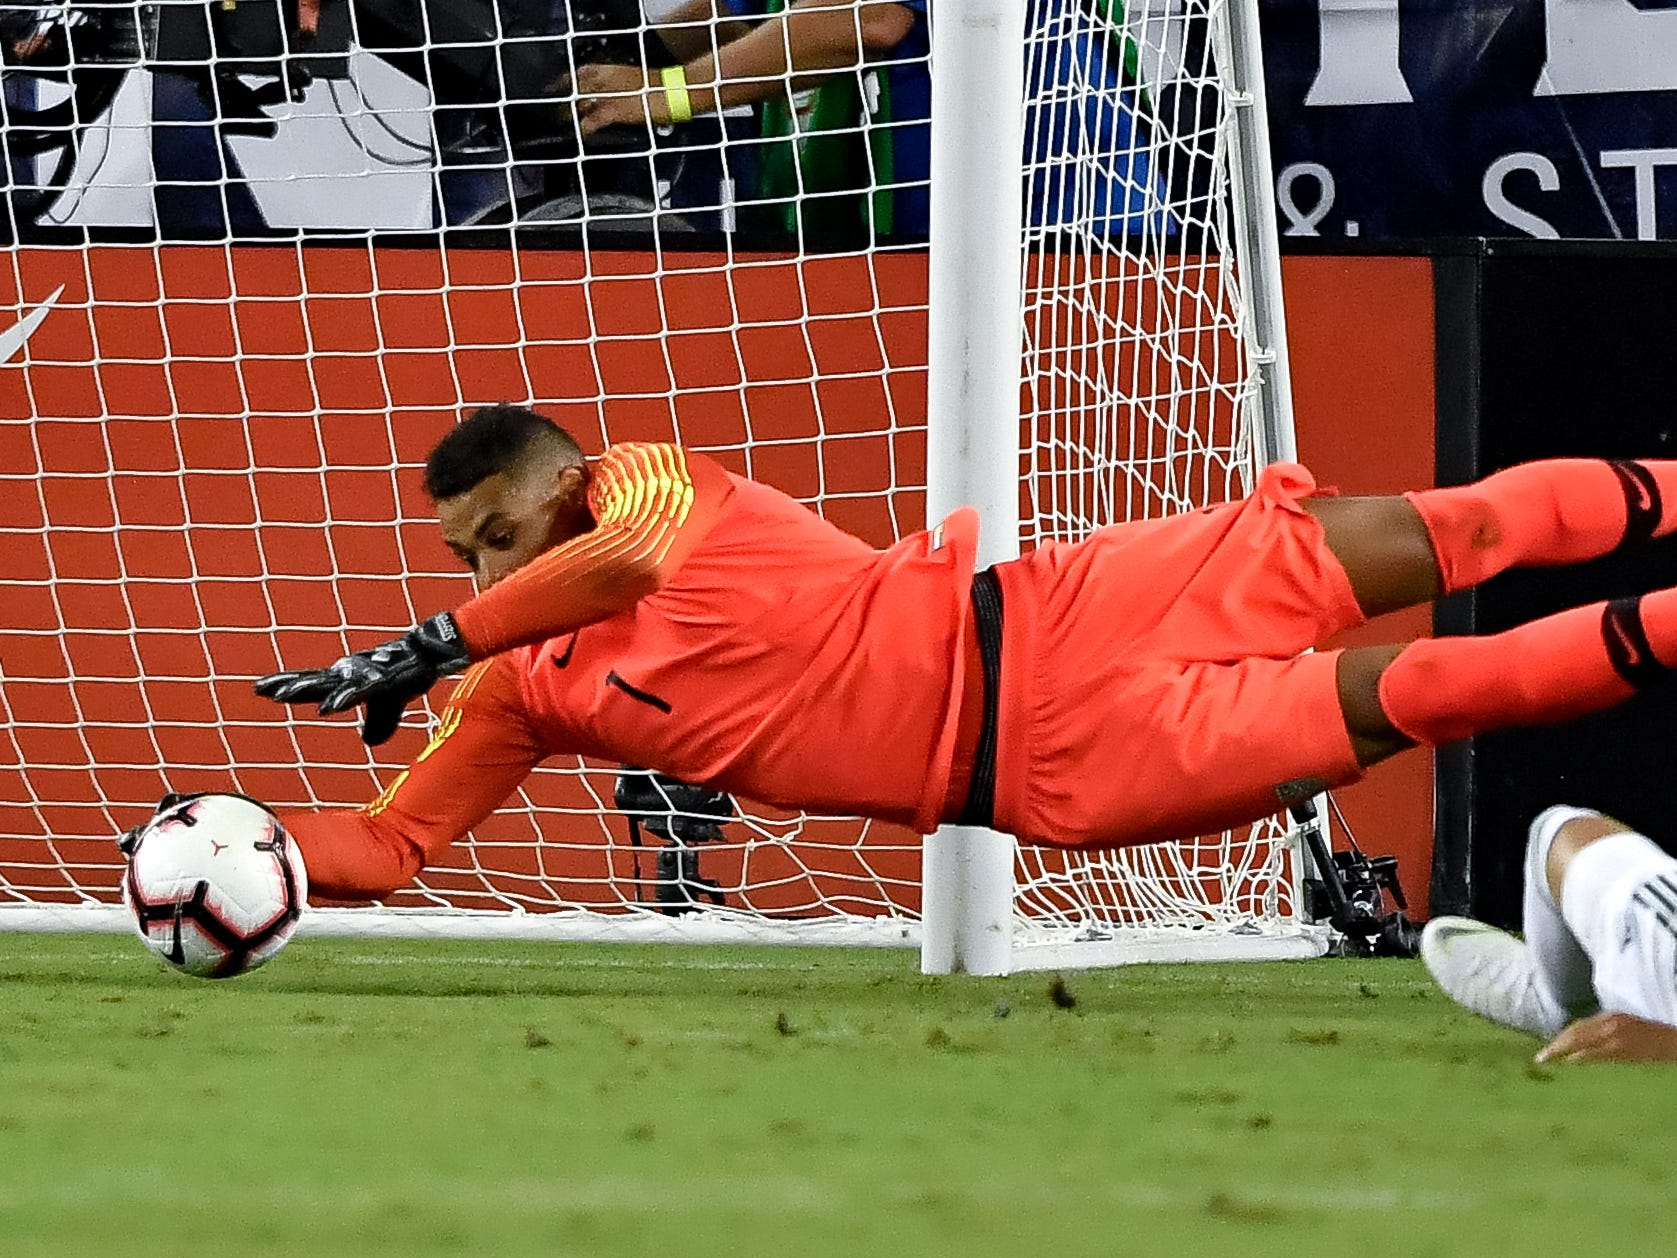 USA goalkeeper Zack Steffen (1) makes a save against Mexico during the first half at Nissan Stadium in Nashville, Tenn., Tuesday, Sept. 11, 2018.